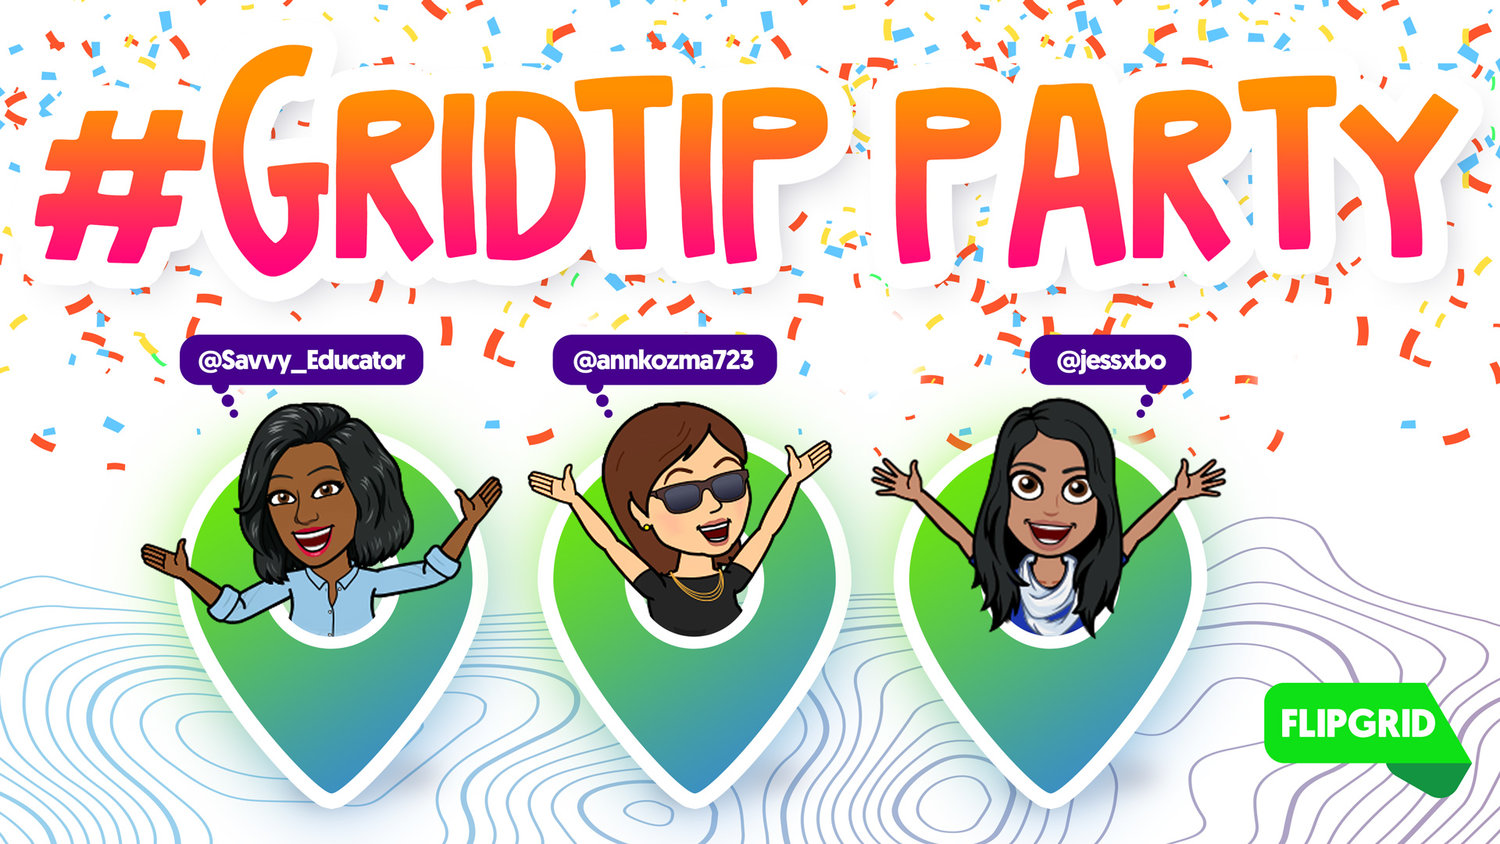 12 Ways to Ring in the New Year with Flipgrid